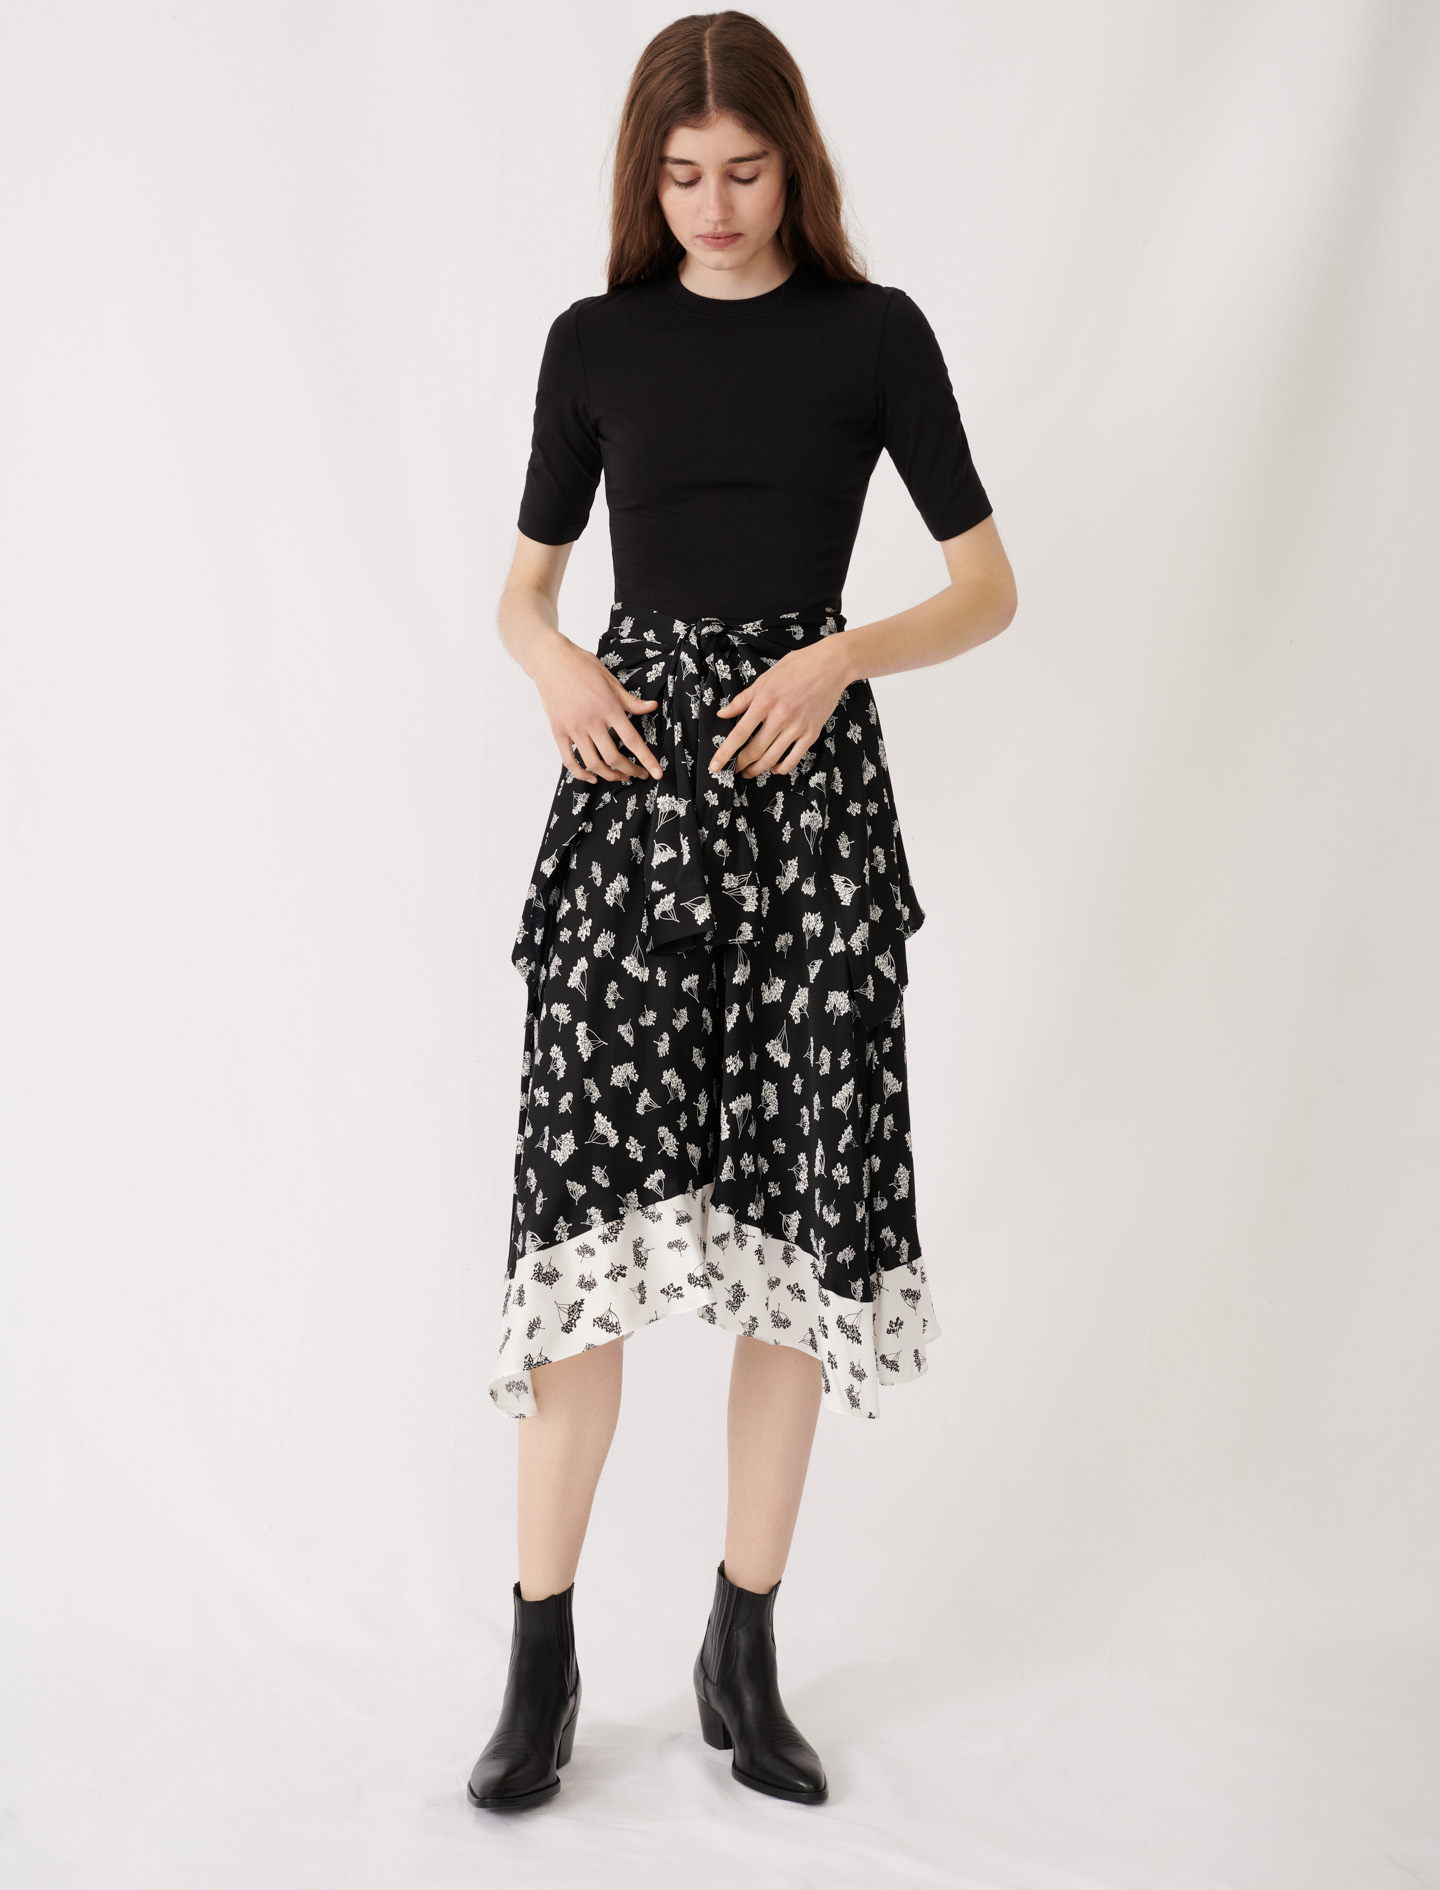 Print skirt midi dress - Black